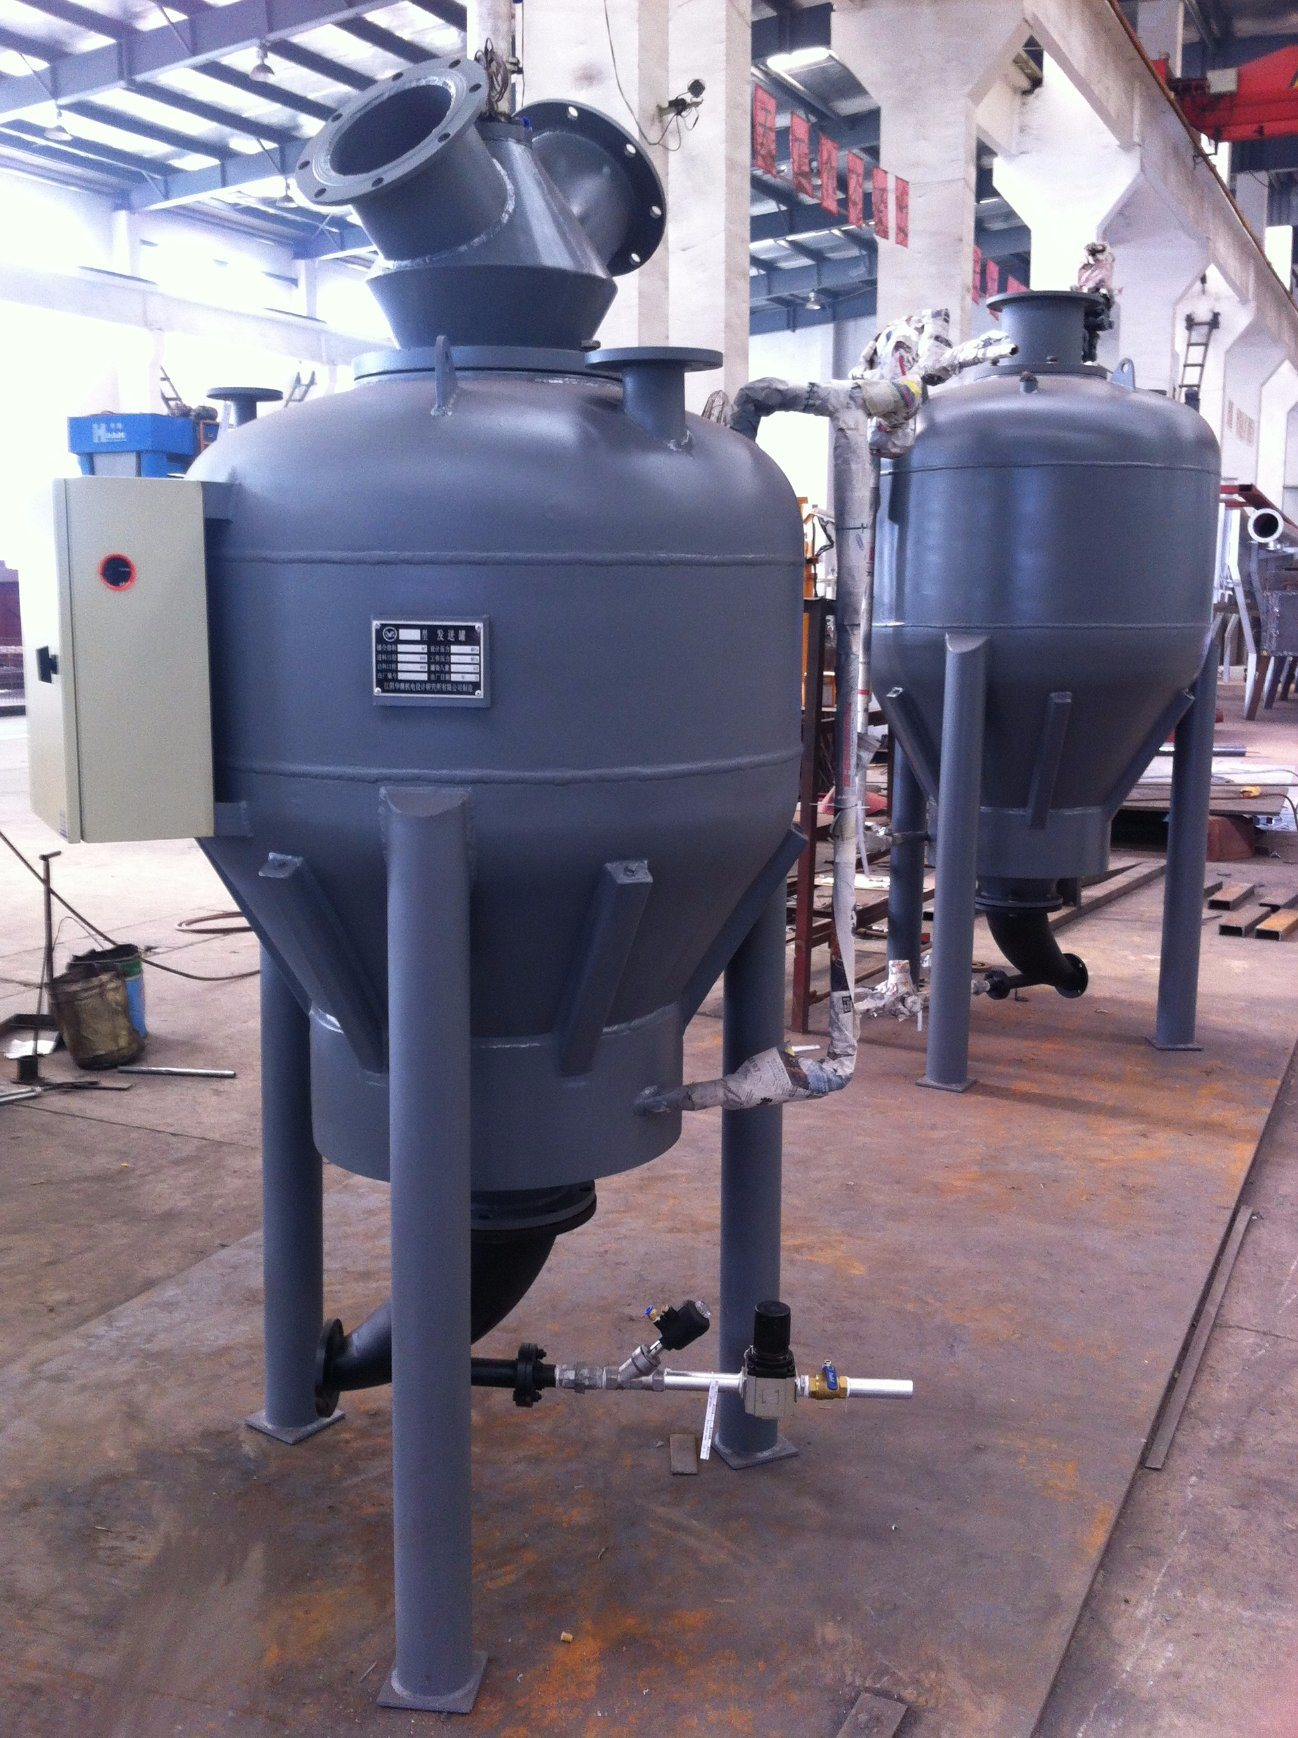 Power Supply Pneumatic Conveying Equipment, Pneumatic Conveying System